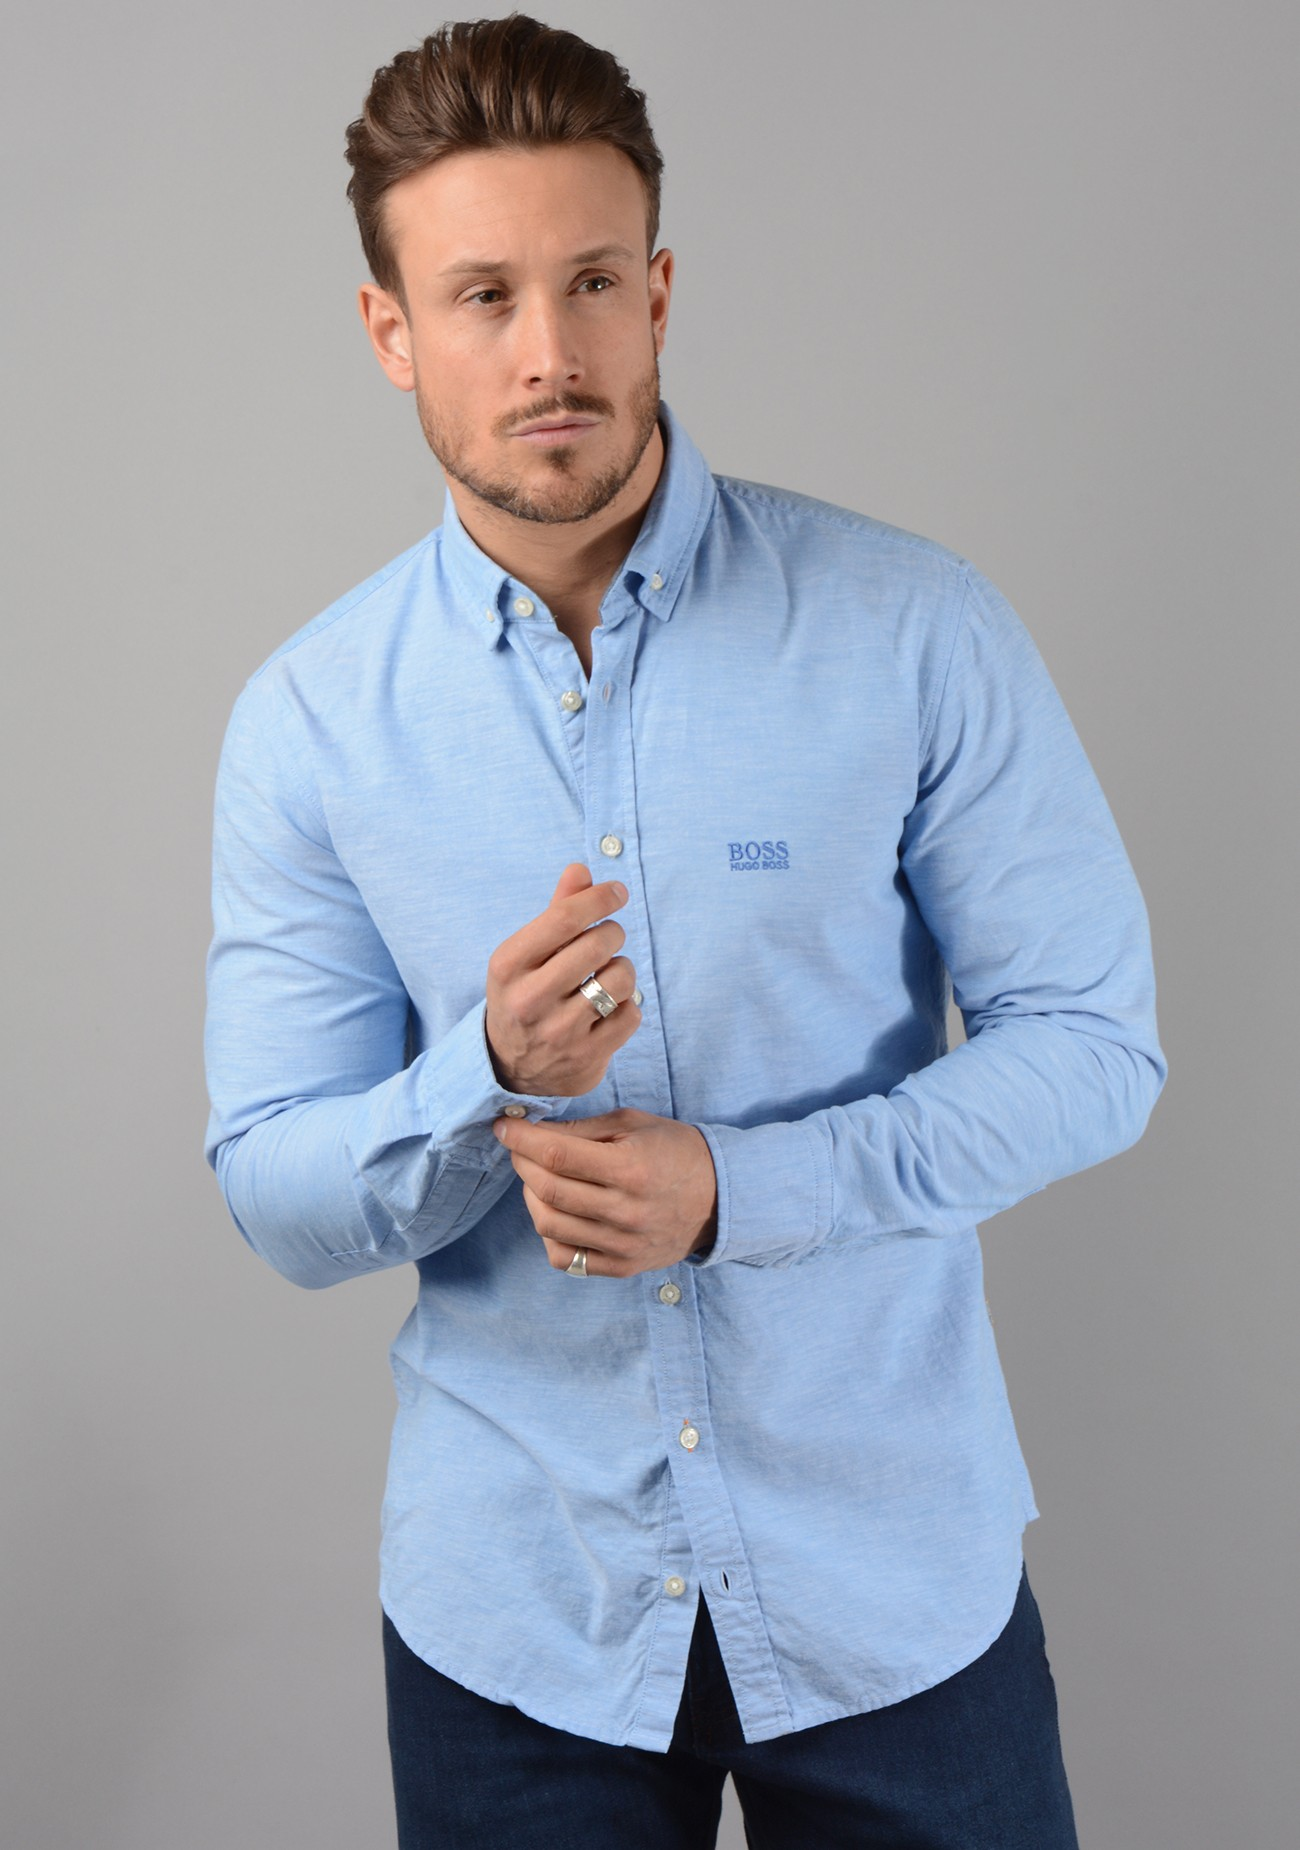 dac98aed6 Epreppy Long Sleeved Shirt in Blue